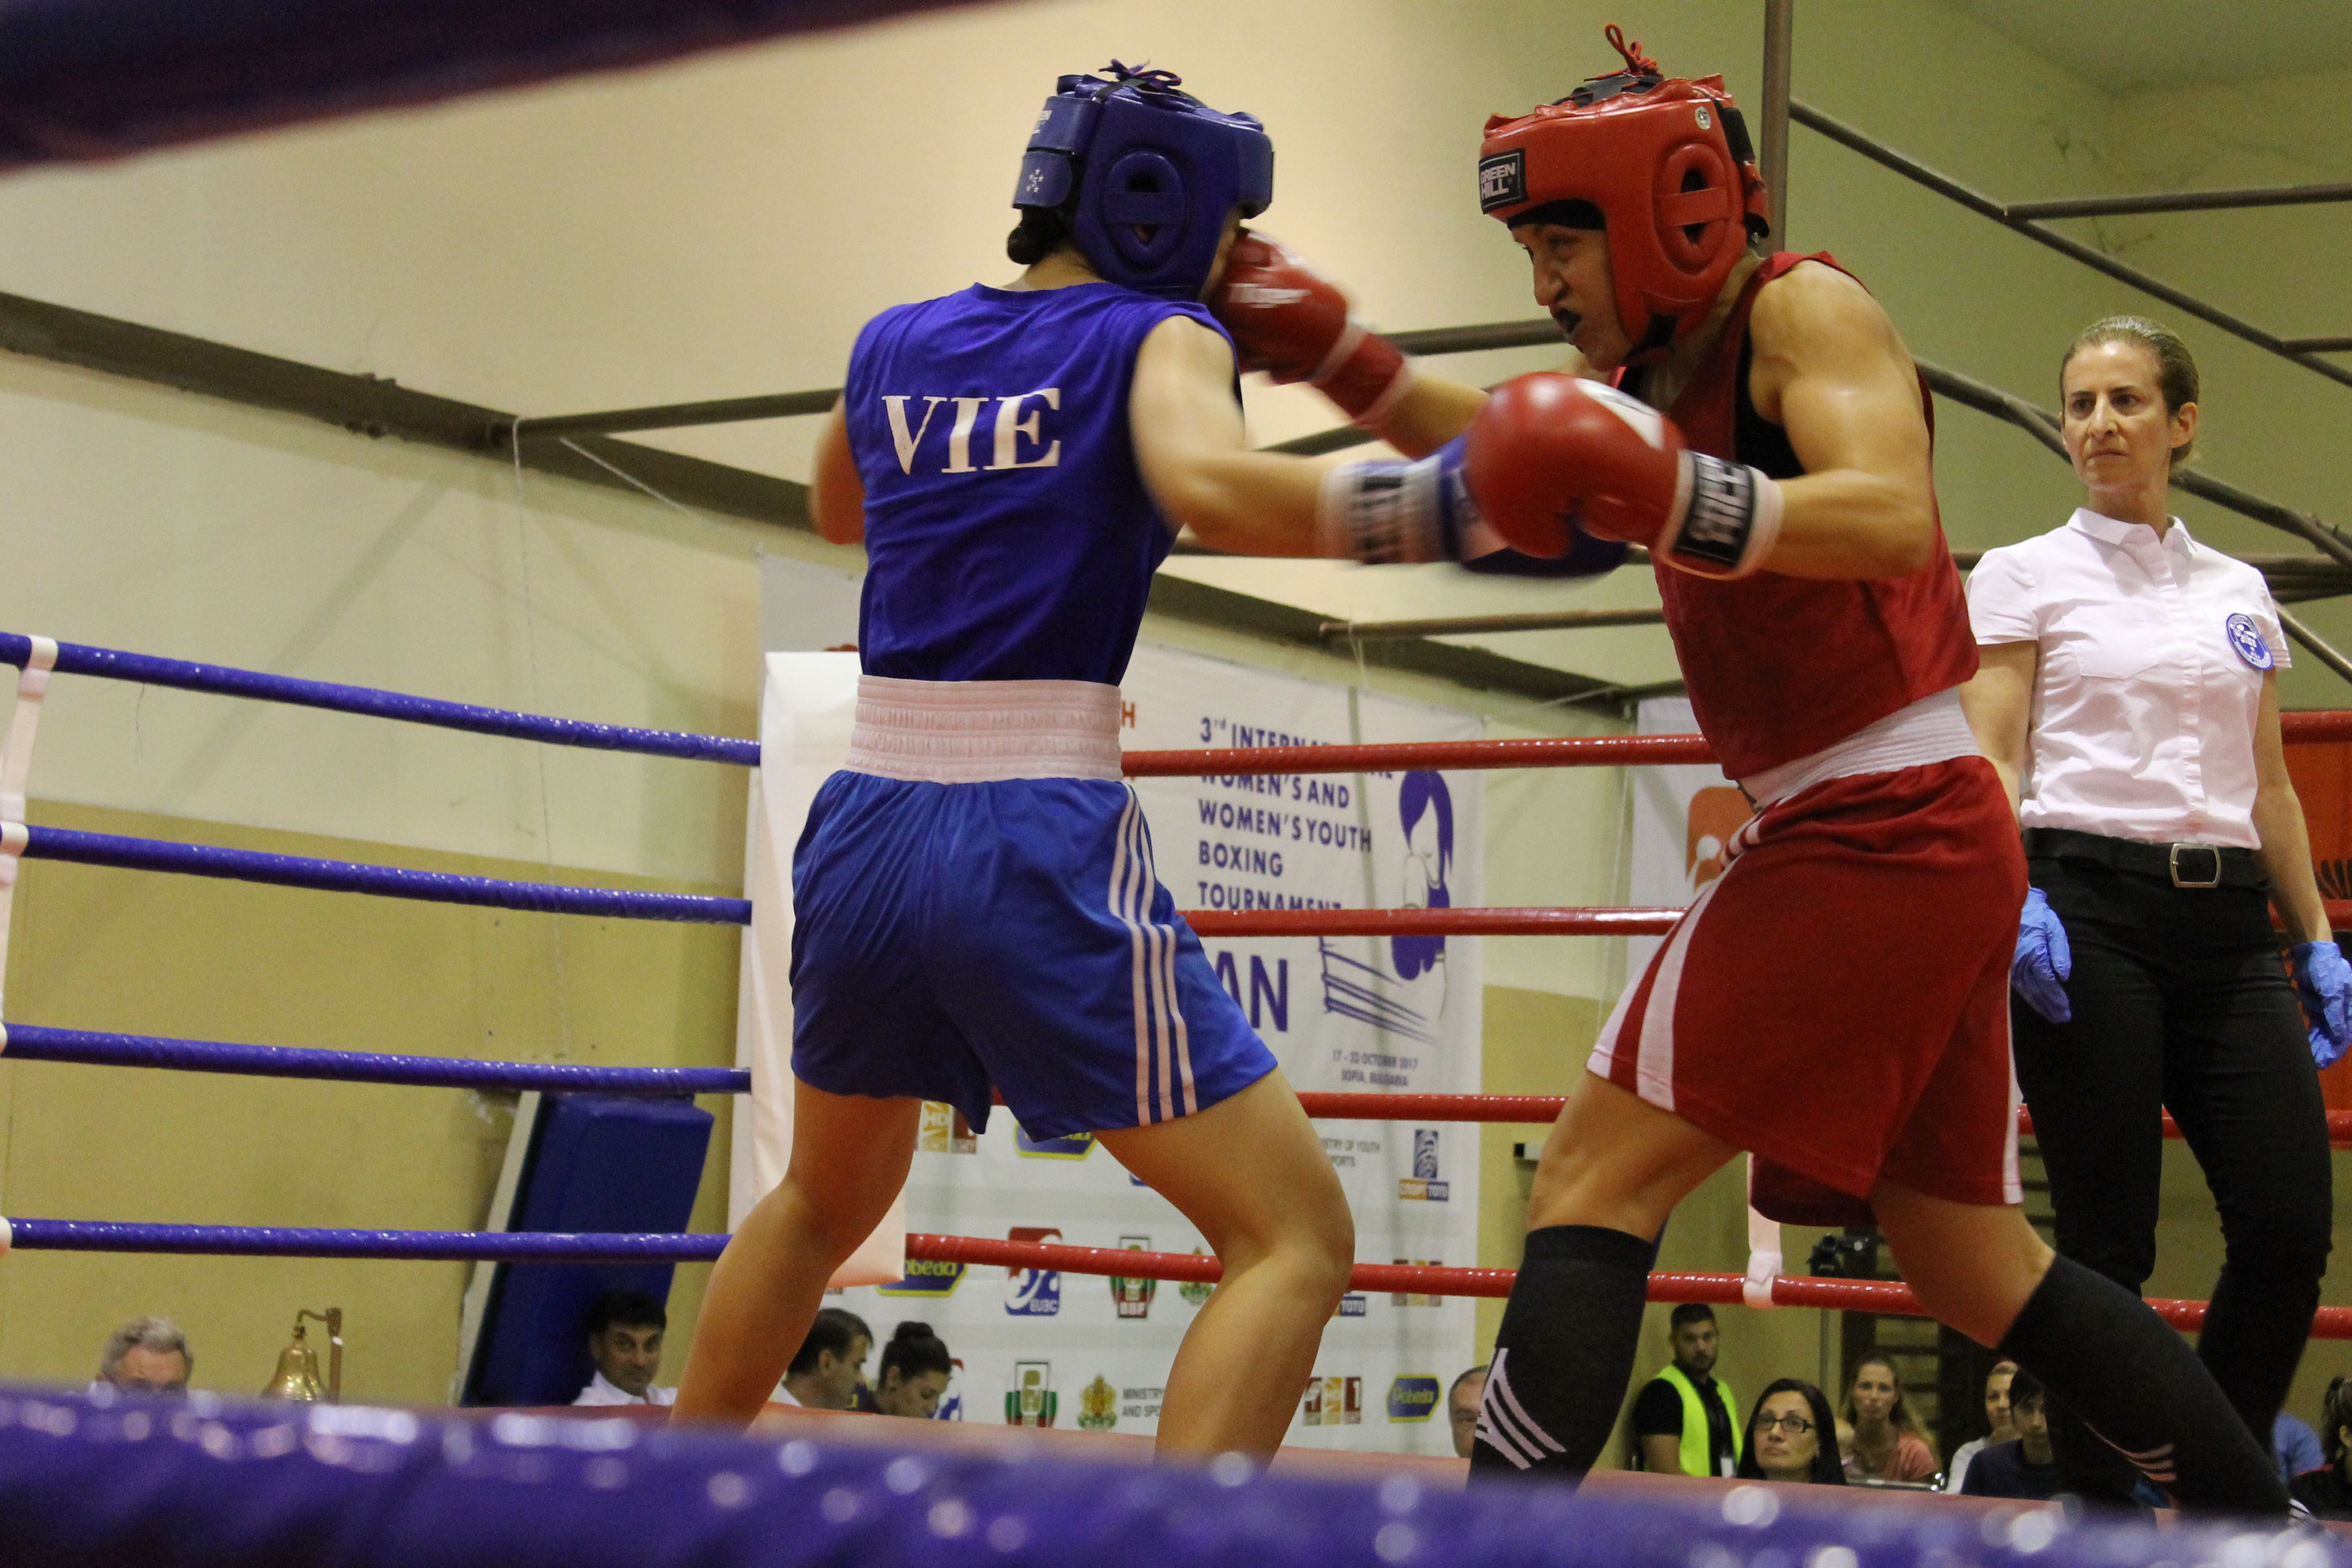 3rd International Women's and Women's Youth Boxing